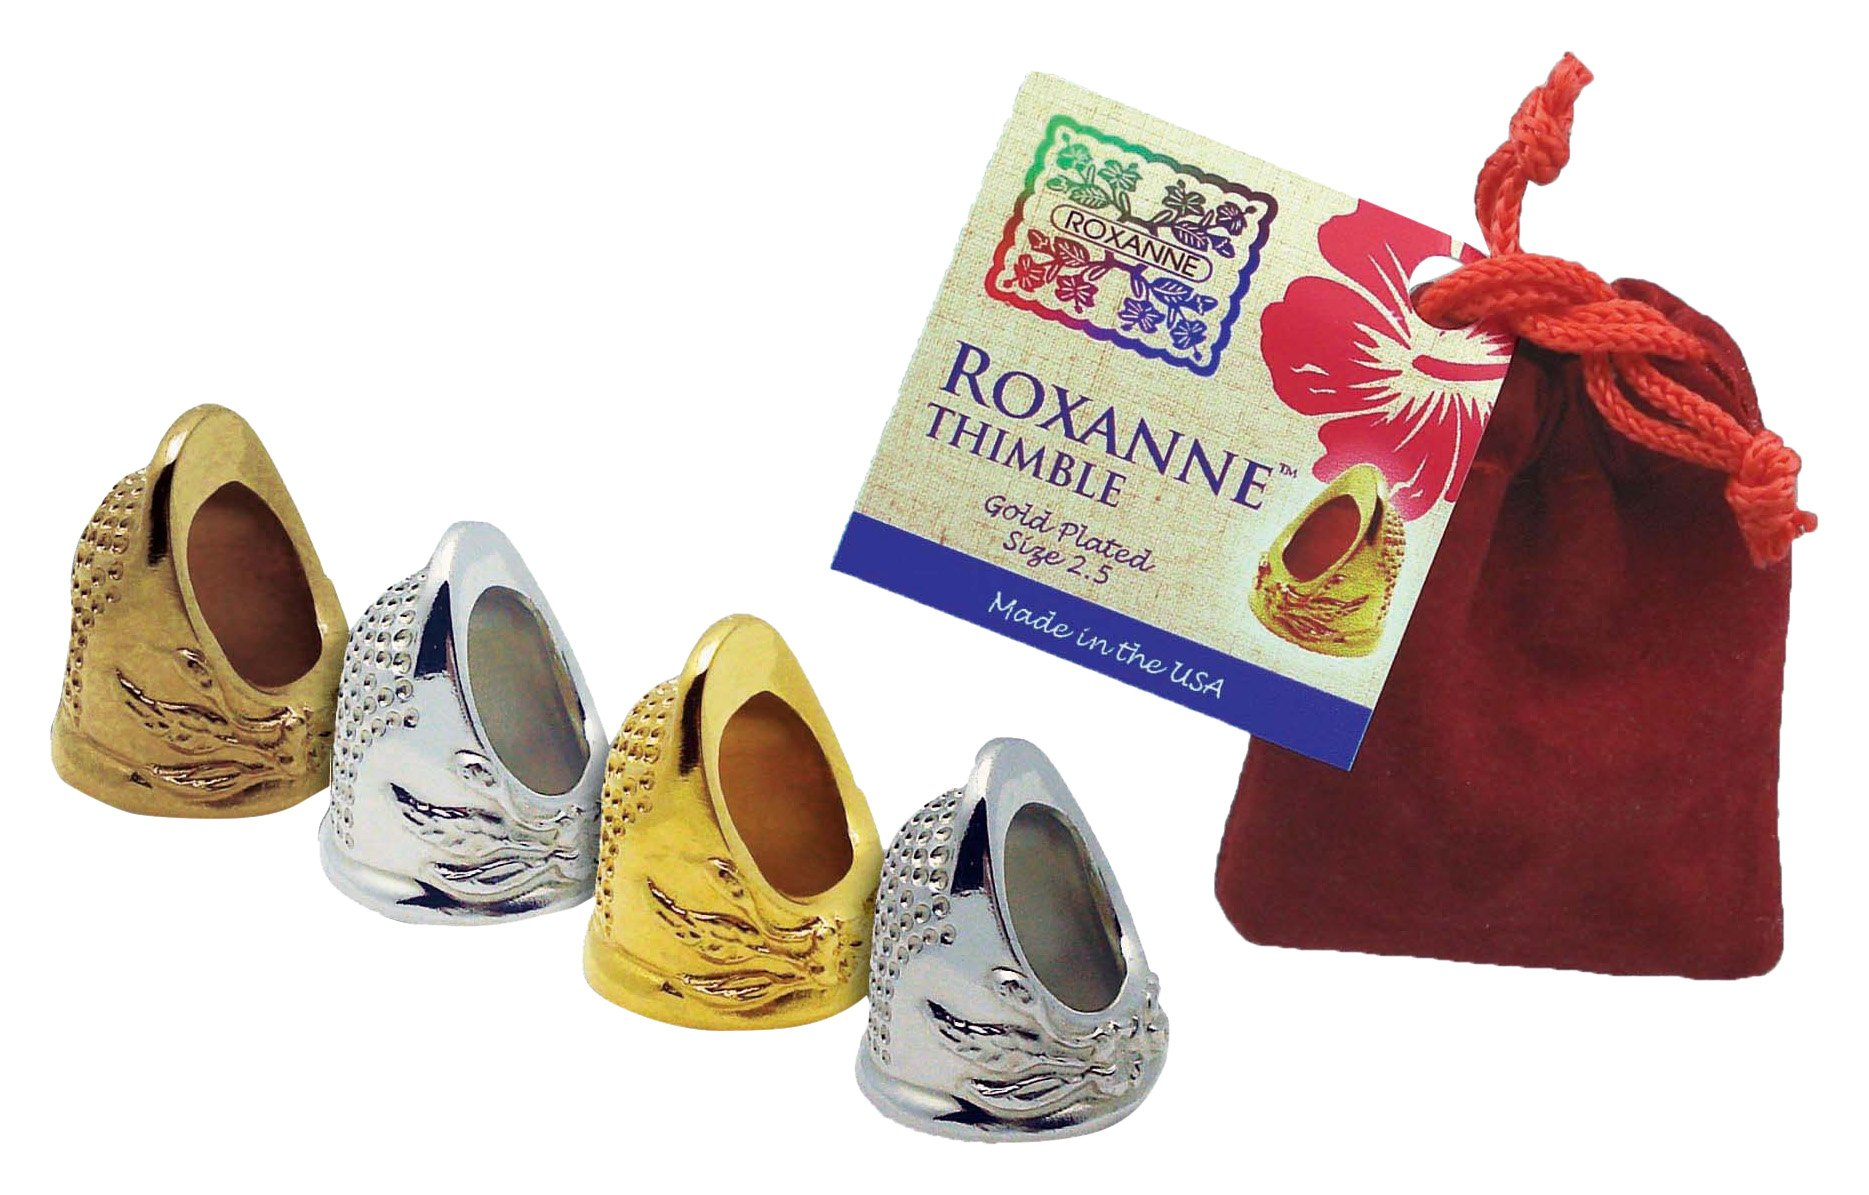 Colonial Needle RX-THGD-4 Roxanne Plated Thimble, Size 4, Gold by Colonial Needle